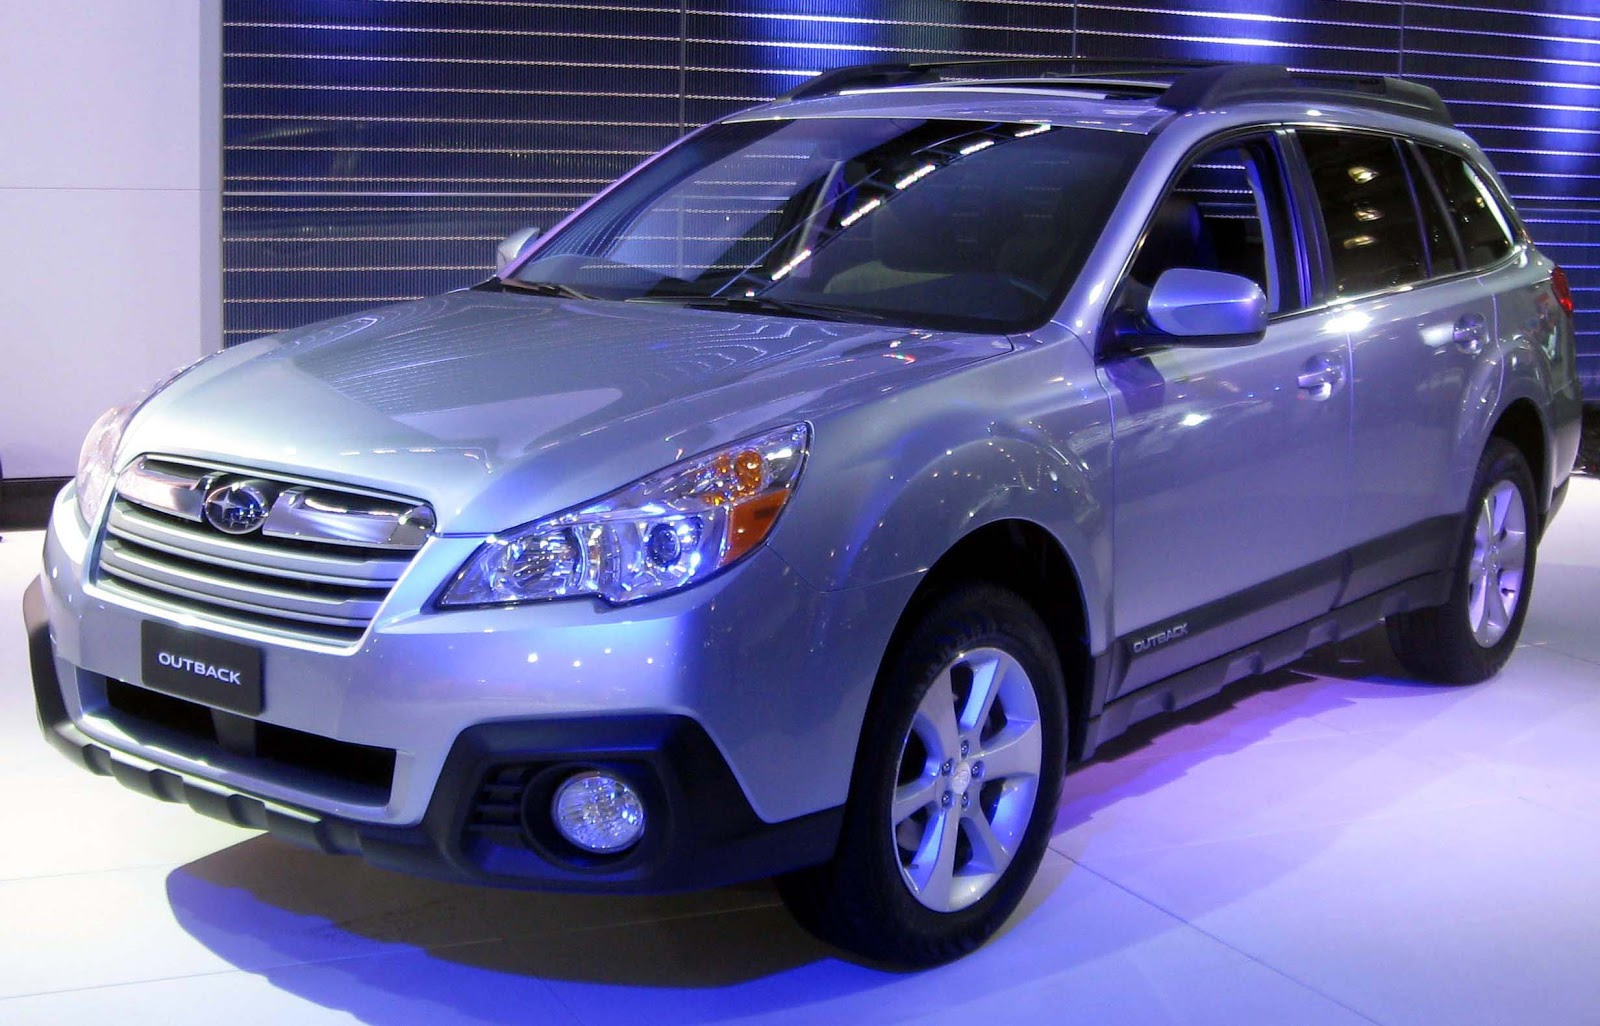 2013 subaru outback review 4 cars and trucks. Black Bedroom Furniture Sets. Home Design Ideas